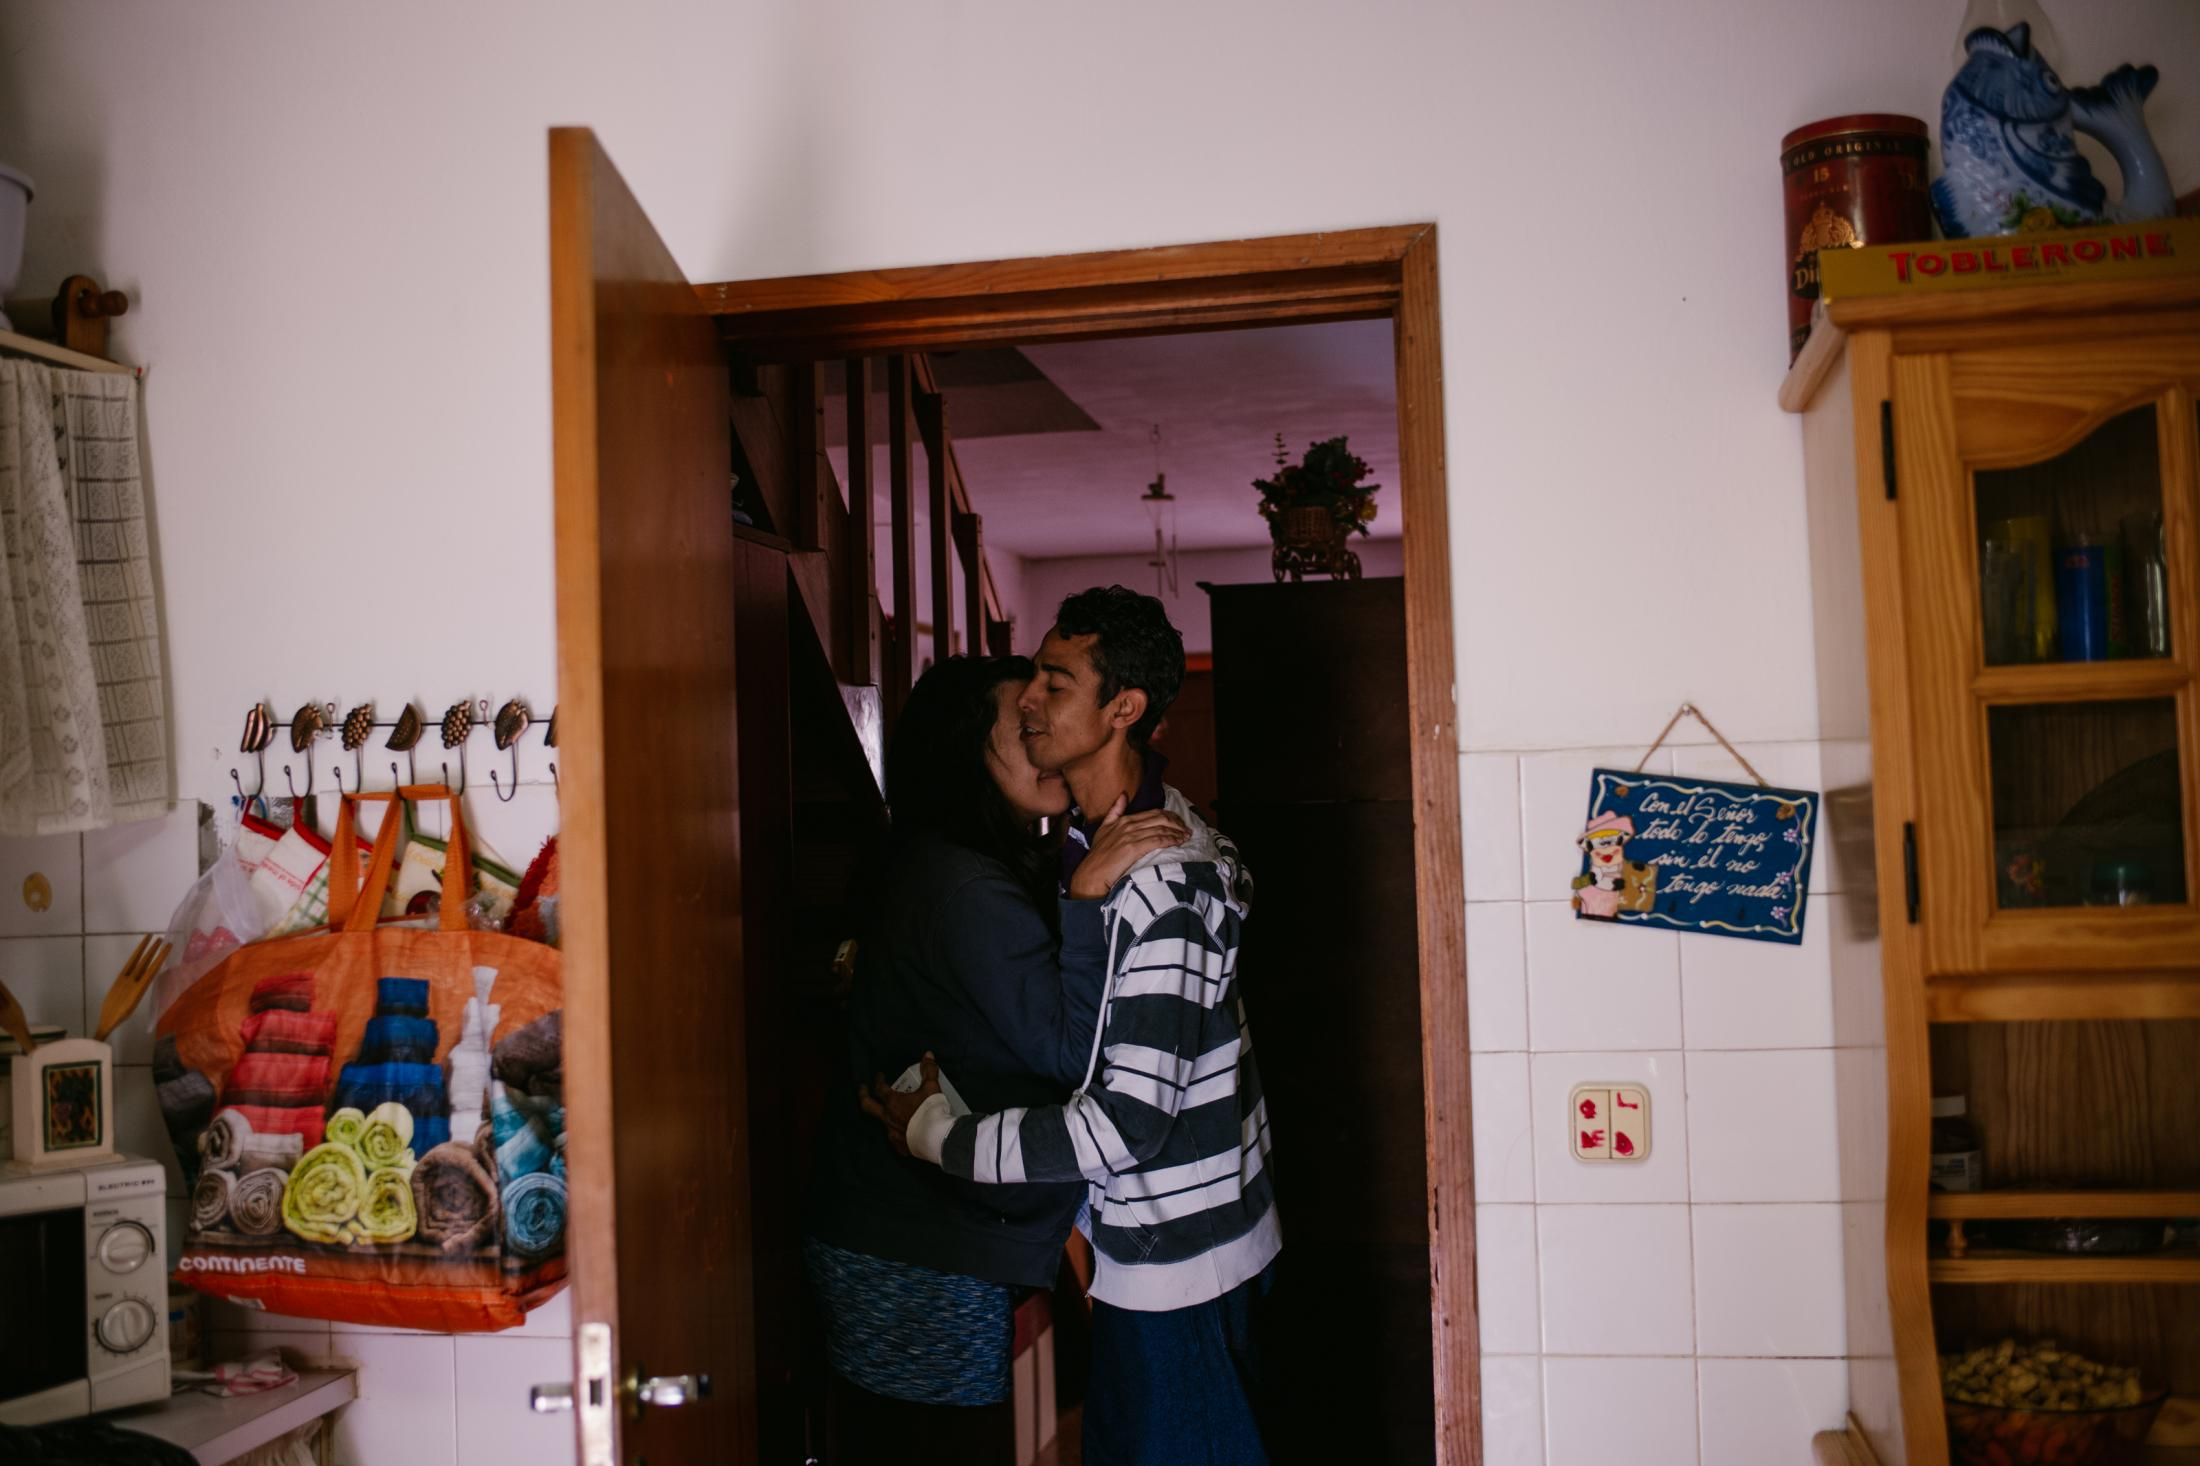 Carla hugs her husband Josué at her parents ́ home. Camacha, Madeira, Portugal. 28th December 2018. Josué moved to Madeira late November to meet his wife again and to start a new life in the Portuguese Island. Both of them were born in Venezuela and neither of them speak Portuguese.